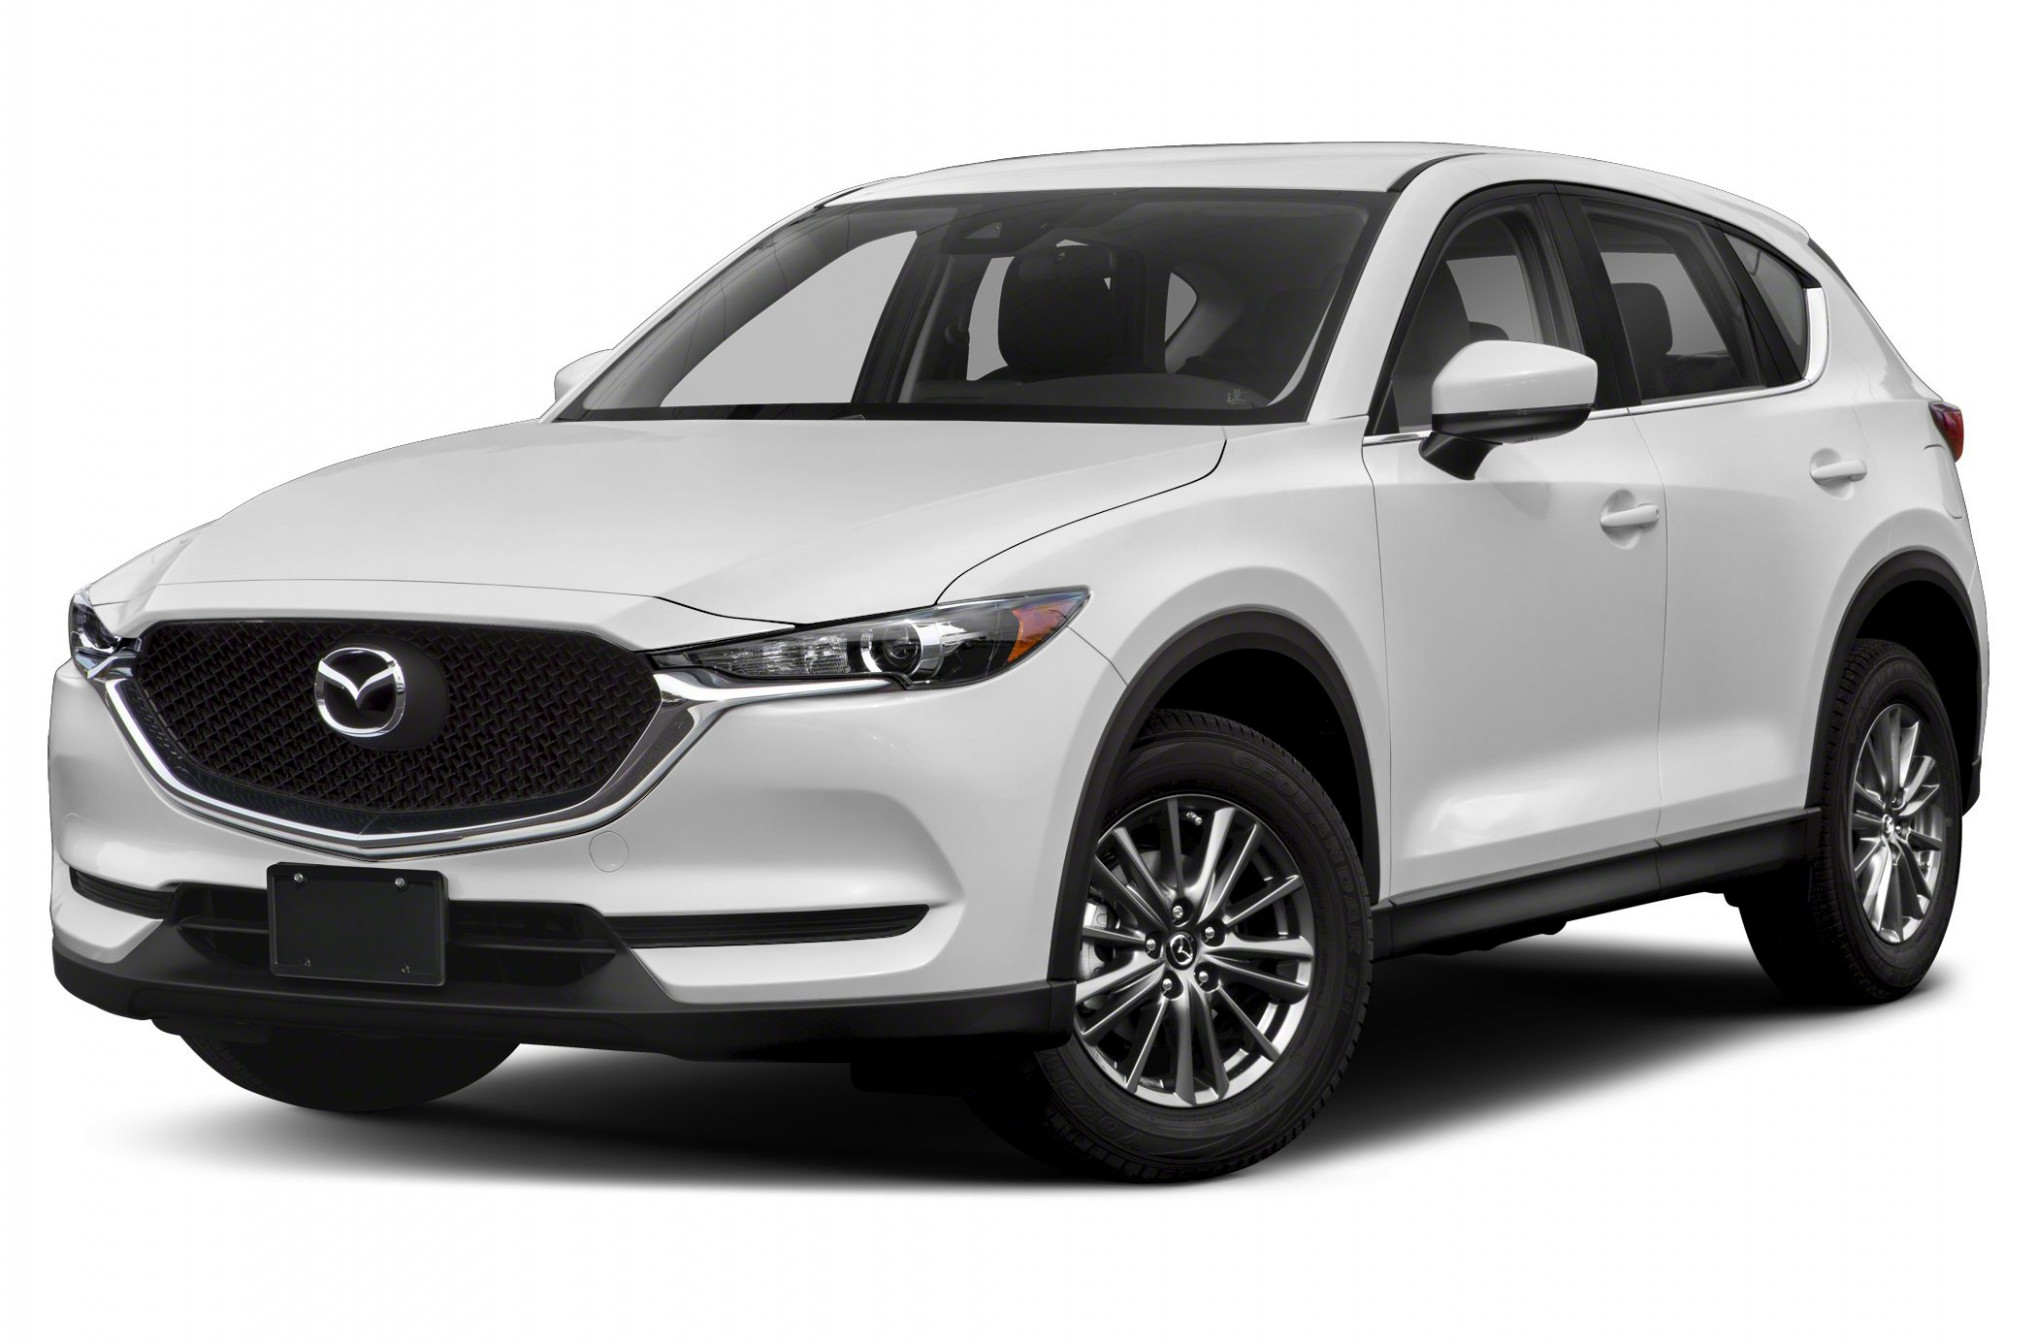 7 Mazda CX-7 Specs and Prices